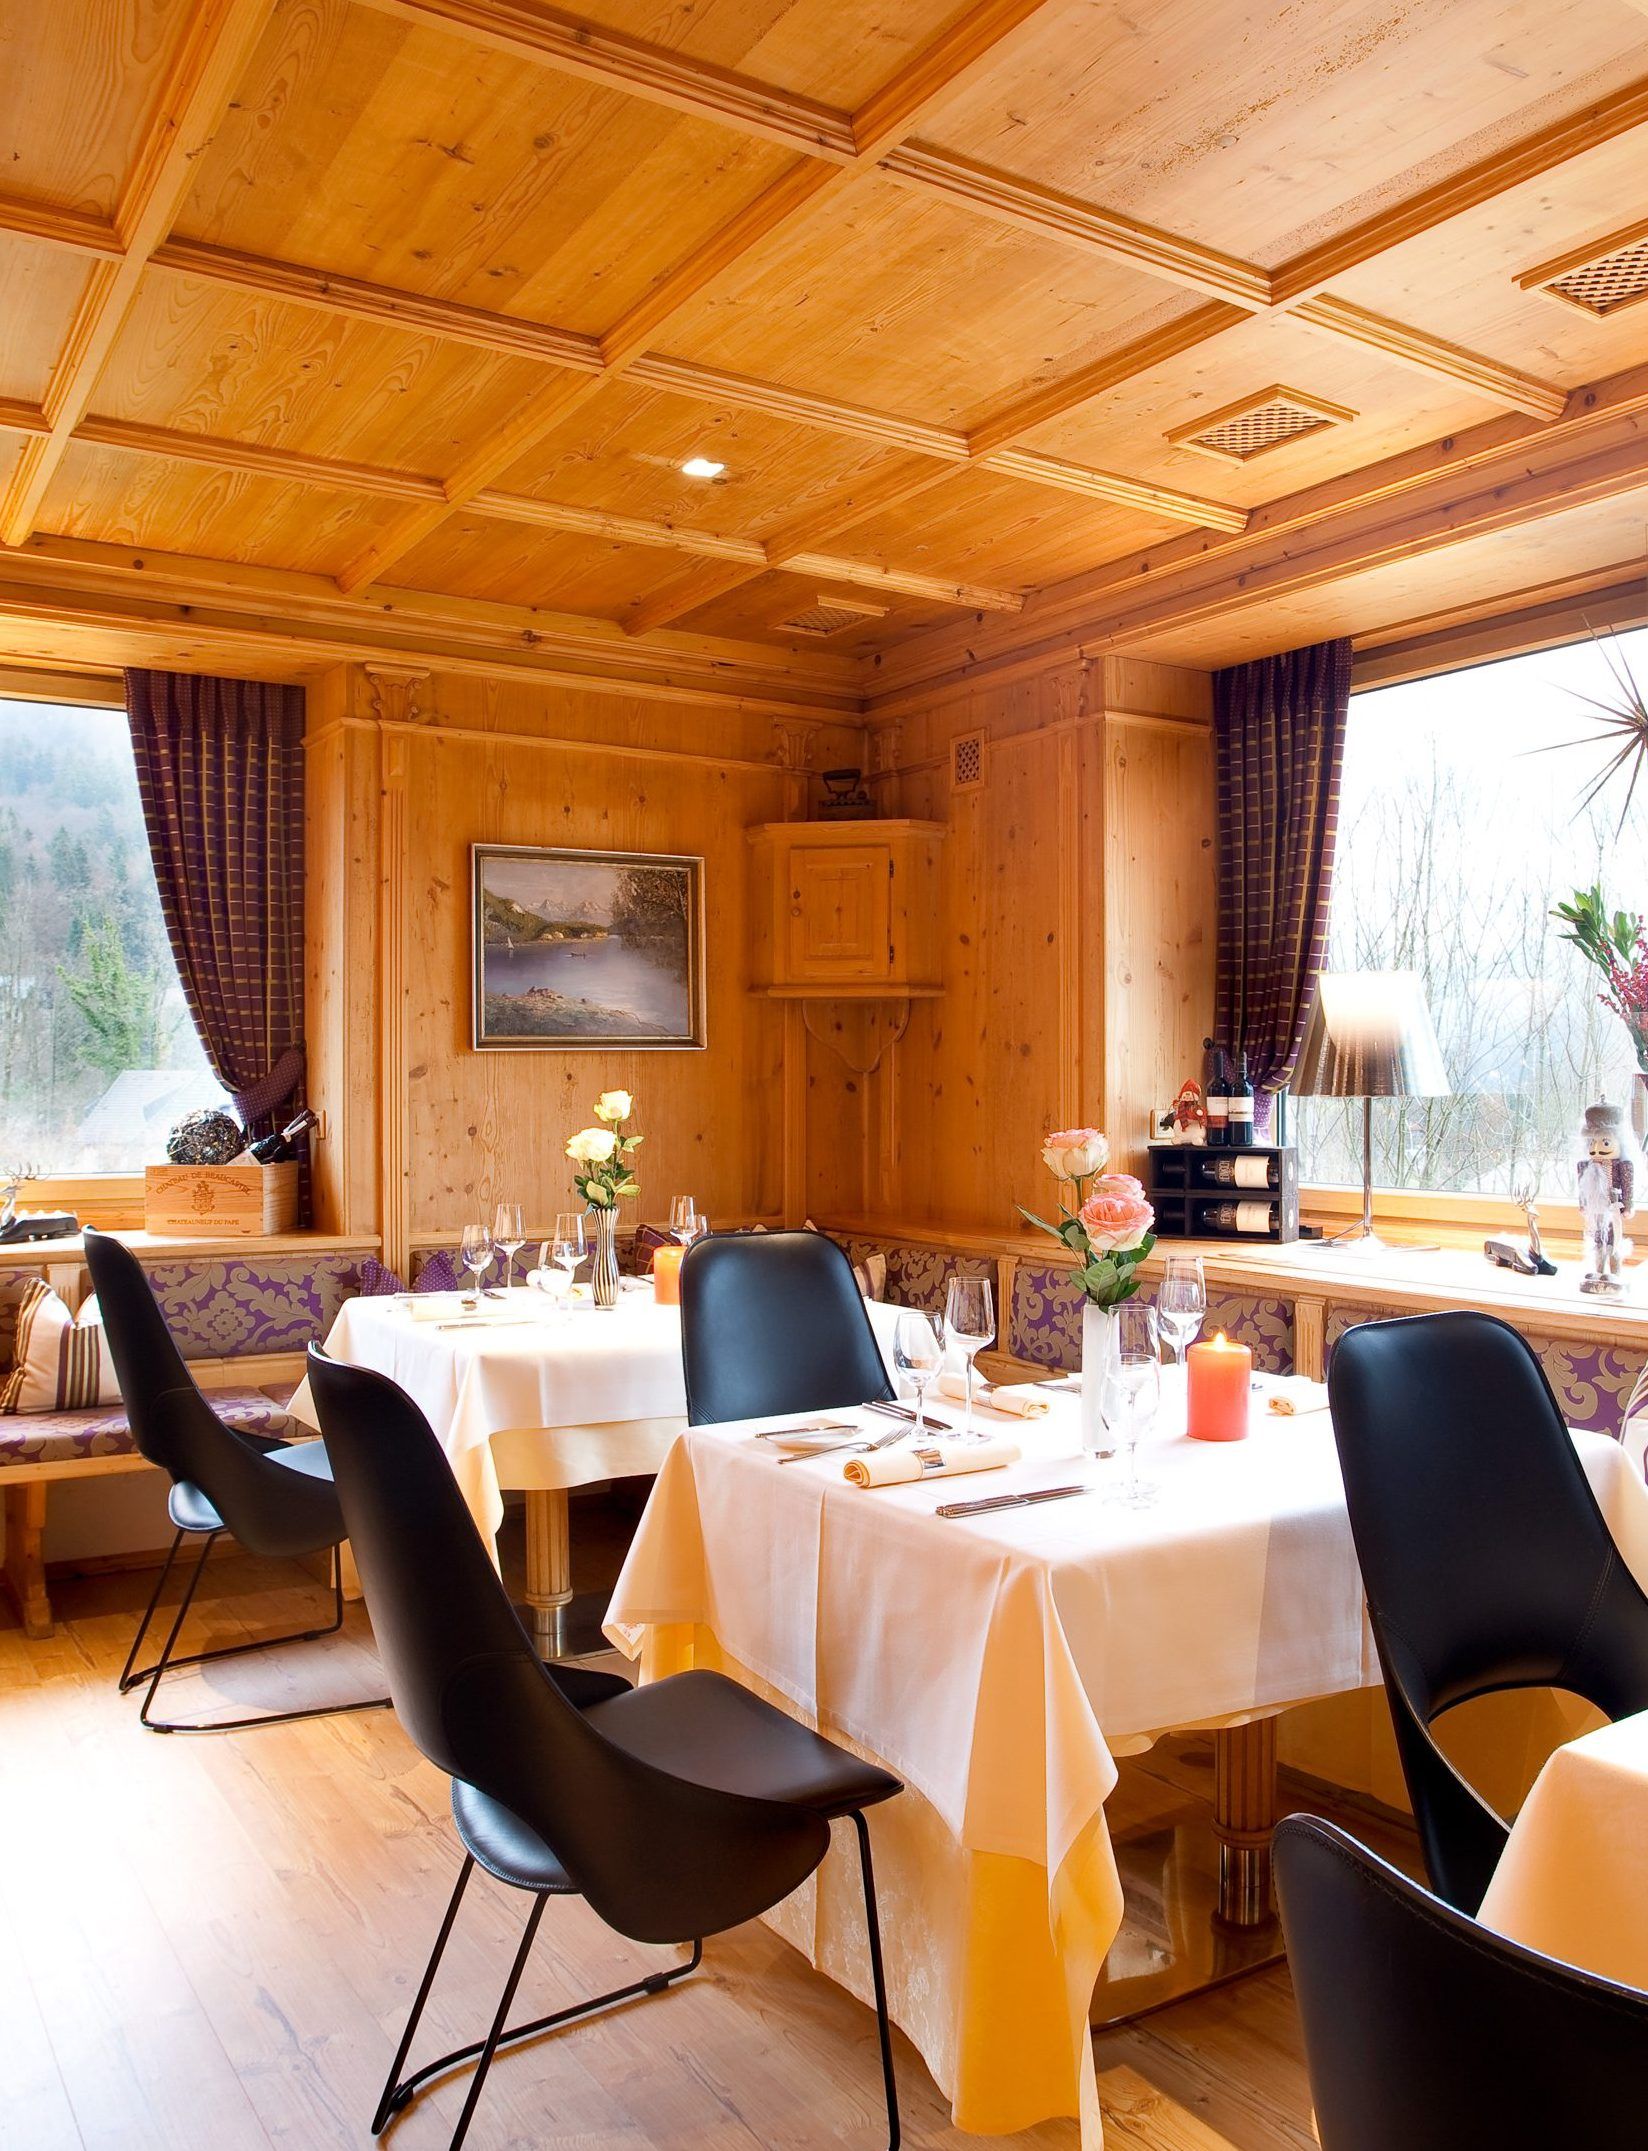 Haus am Hang – Restaurant Haus an Hang in St Gilgen